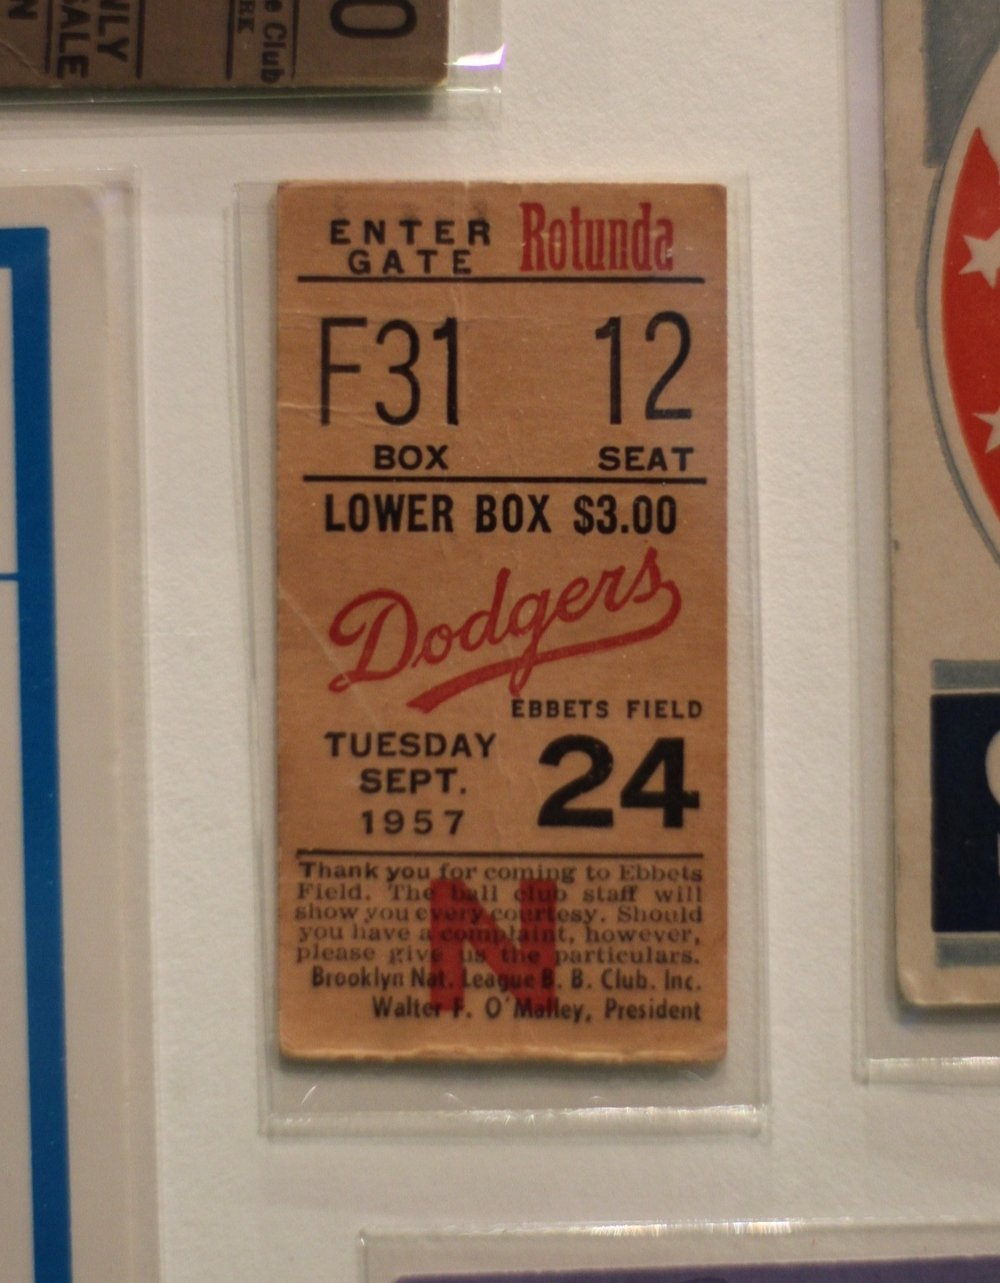 Ticket to the Brooklyn Dodger's final game at Ebbets Field.